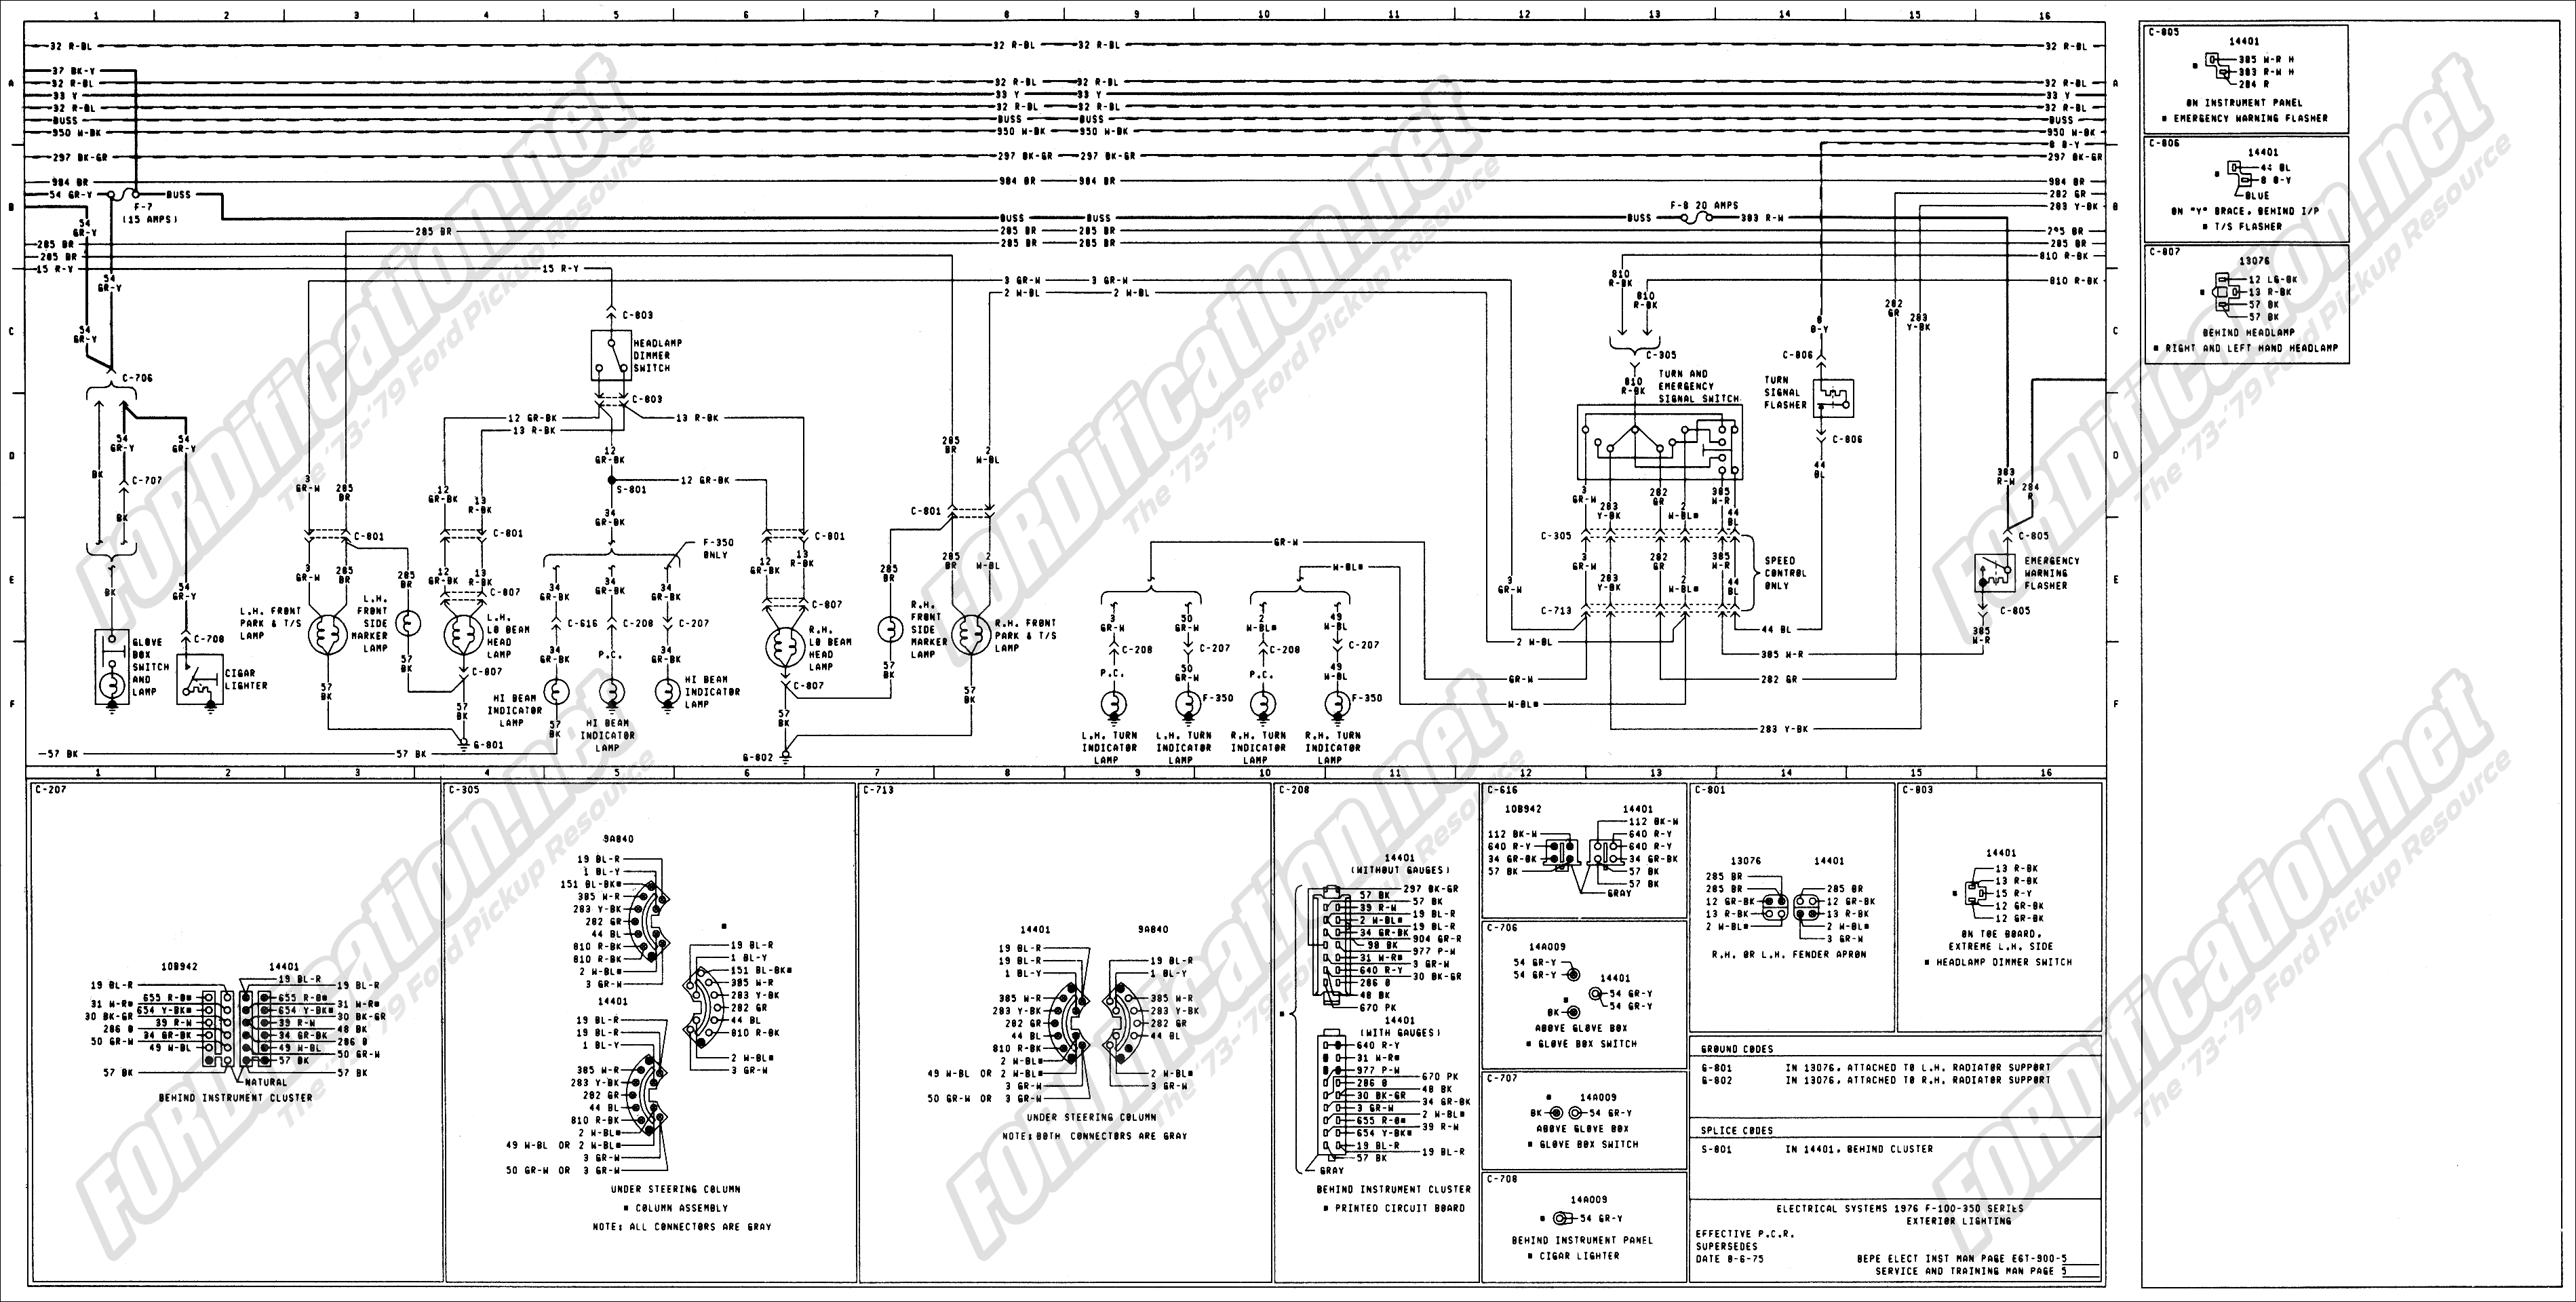 wiring_76master_5of9 1973 1979 ford truck wiring diagrams & schematics fordification net ford f250 wiring diagram at soozxer.org